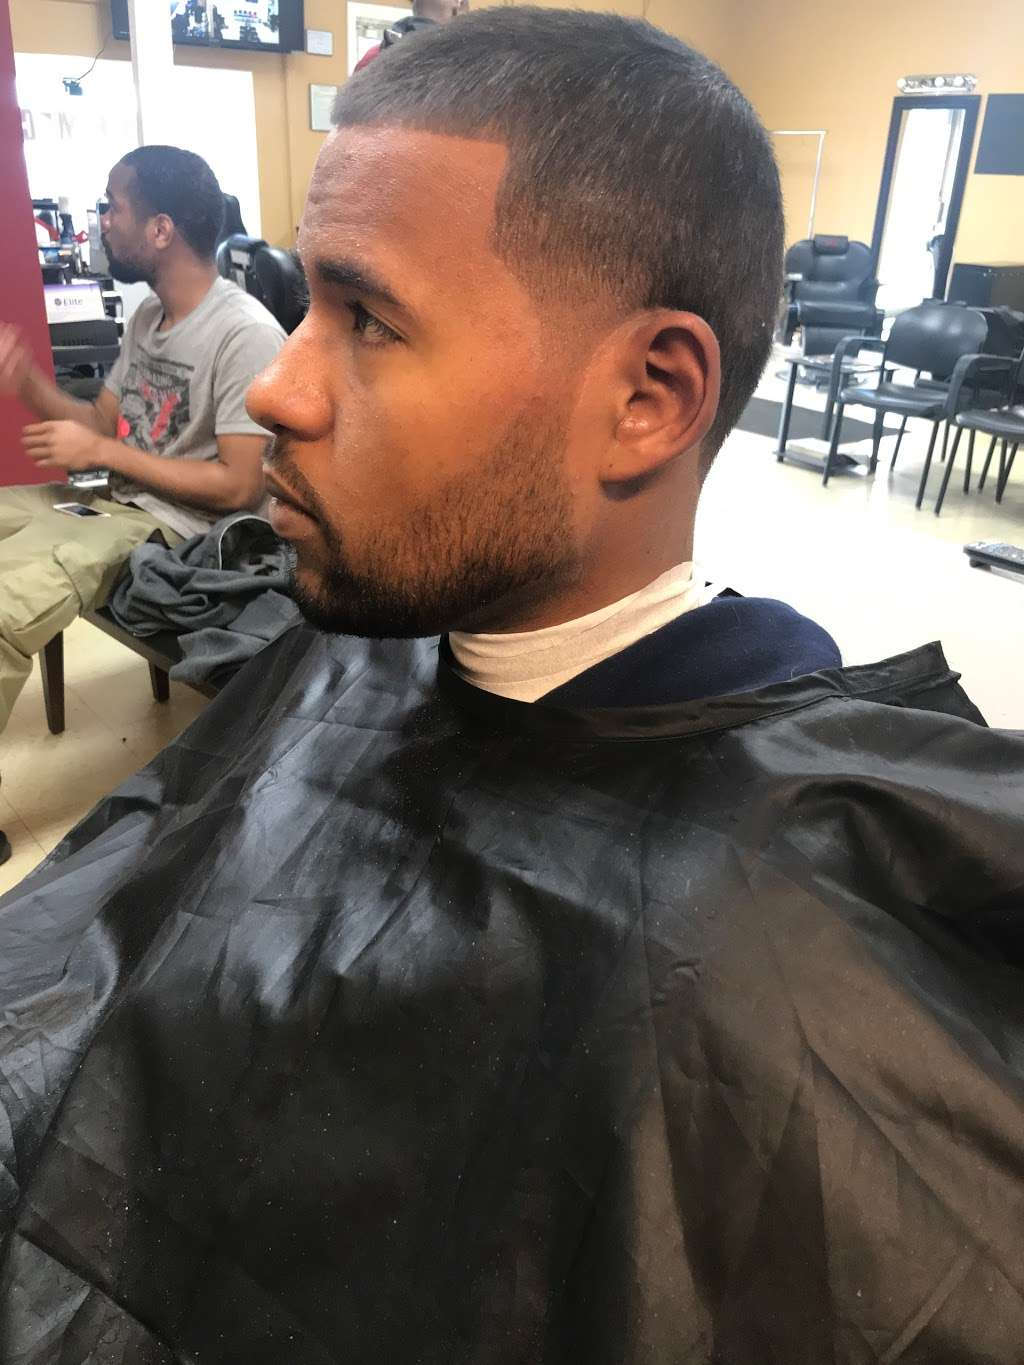 Hair Mechanx Barber & Beauty Salon LLC - hair care  | Photo 6 of 10 | Address: 8716 E 21st St, Indianapolis, IN 46219, USA | Phone: (317) 572-0340